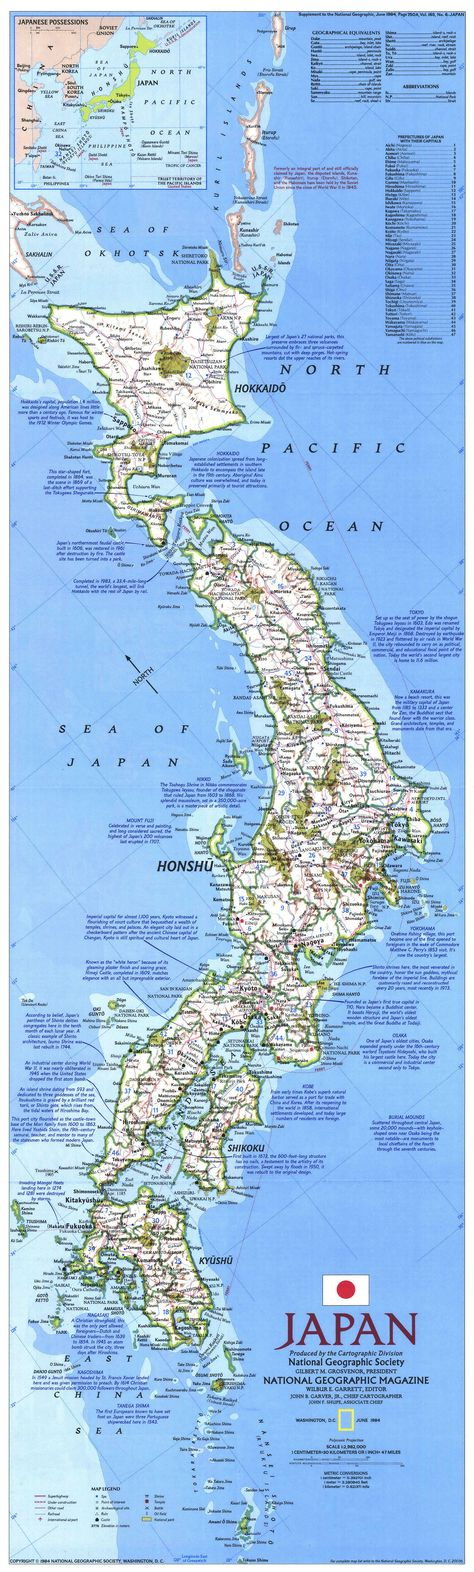 Map of Japan to Print world map asia japan maps large color map - new world map showing tokyo japan